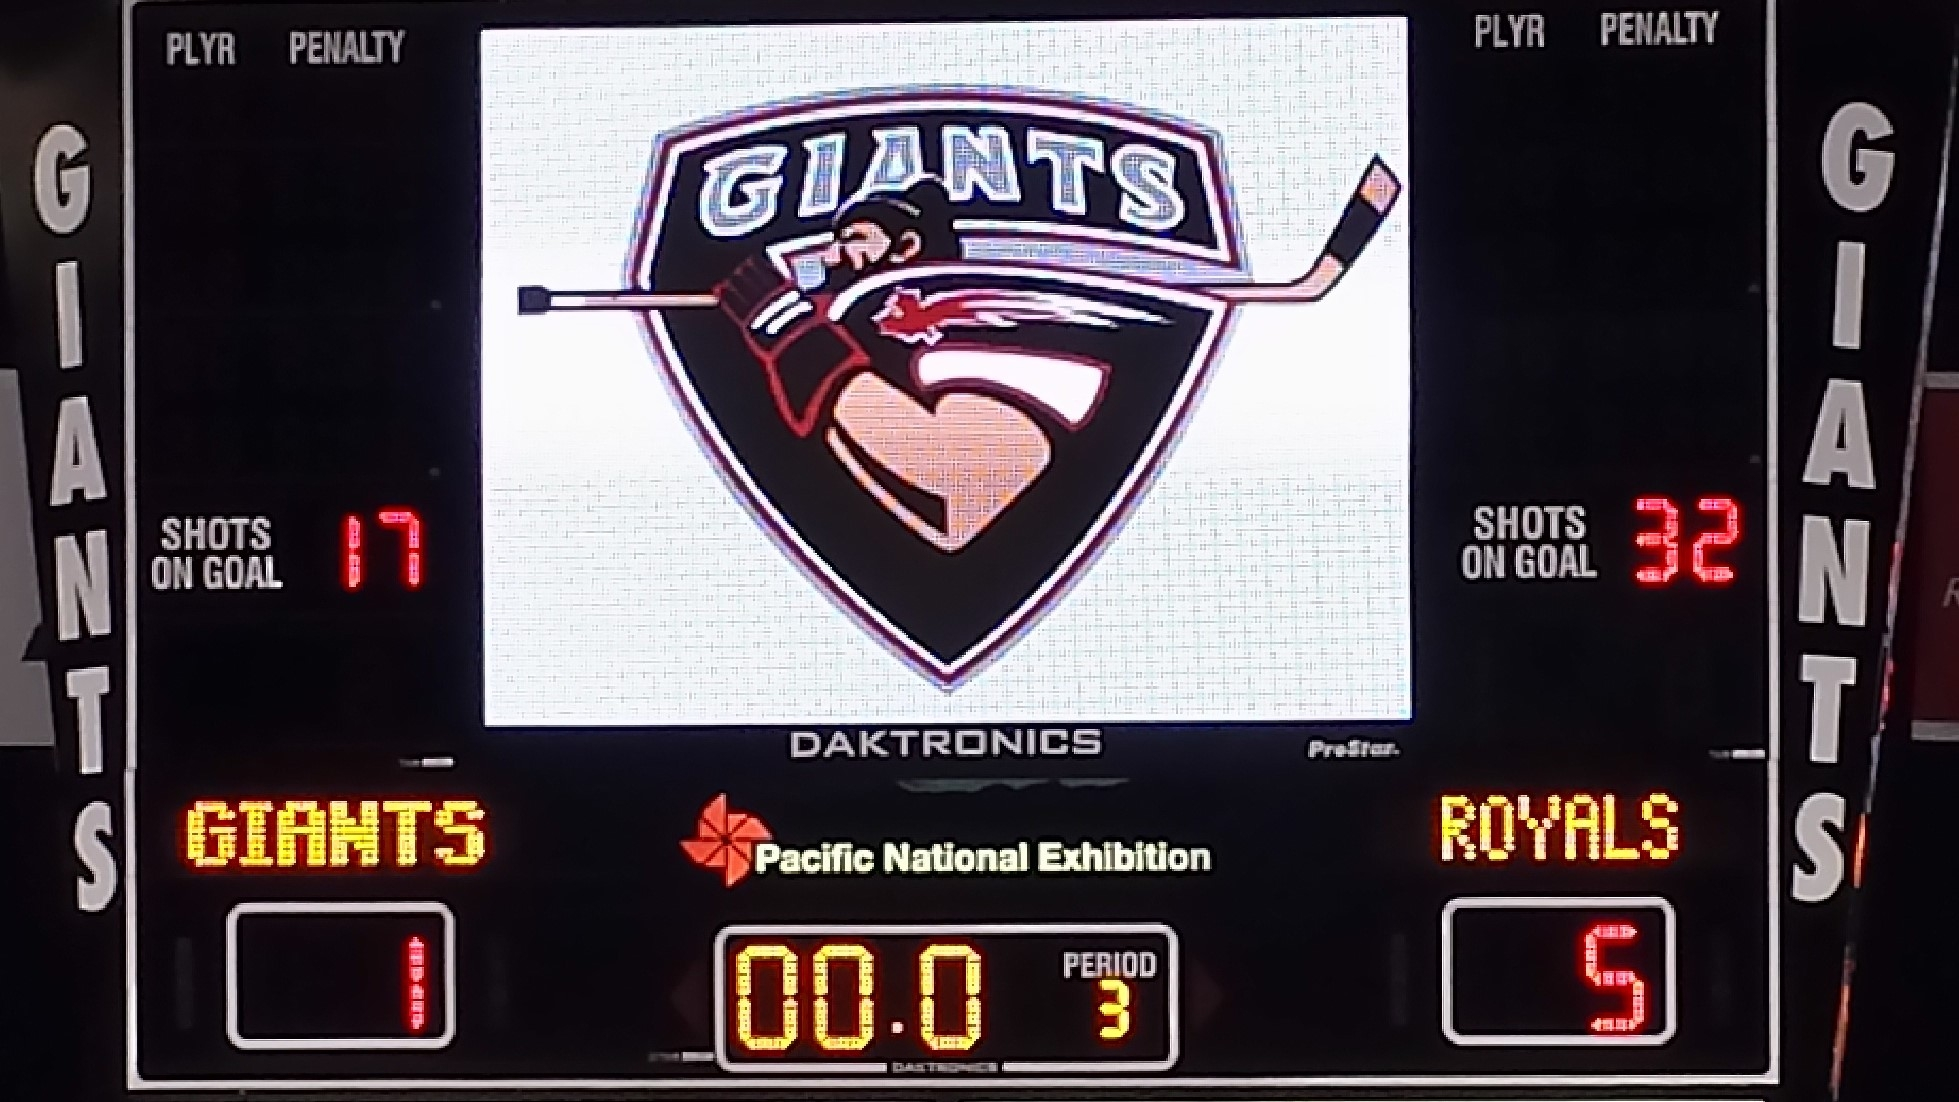 Royals Drop Giants 5-1 Friday, Hat Trick For Hannoun